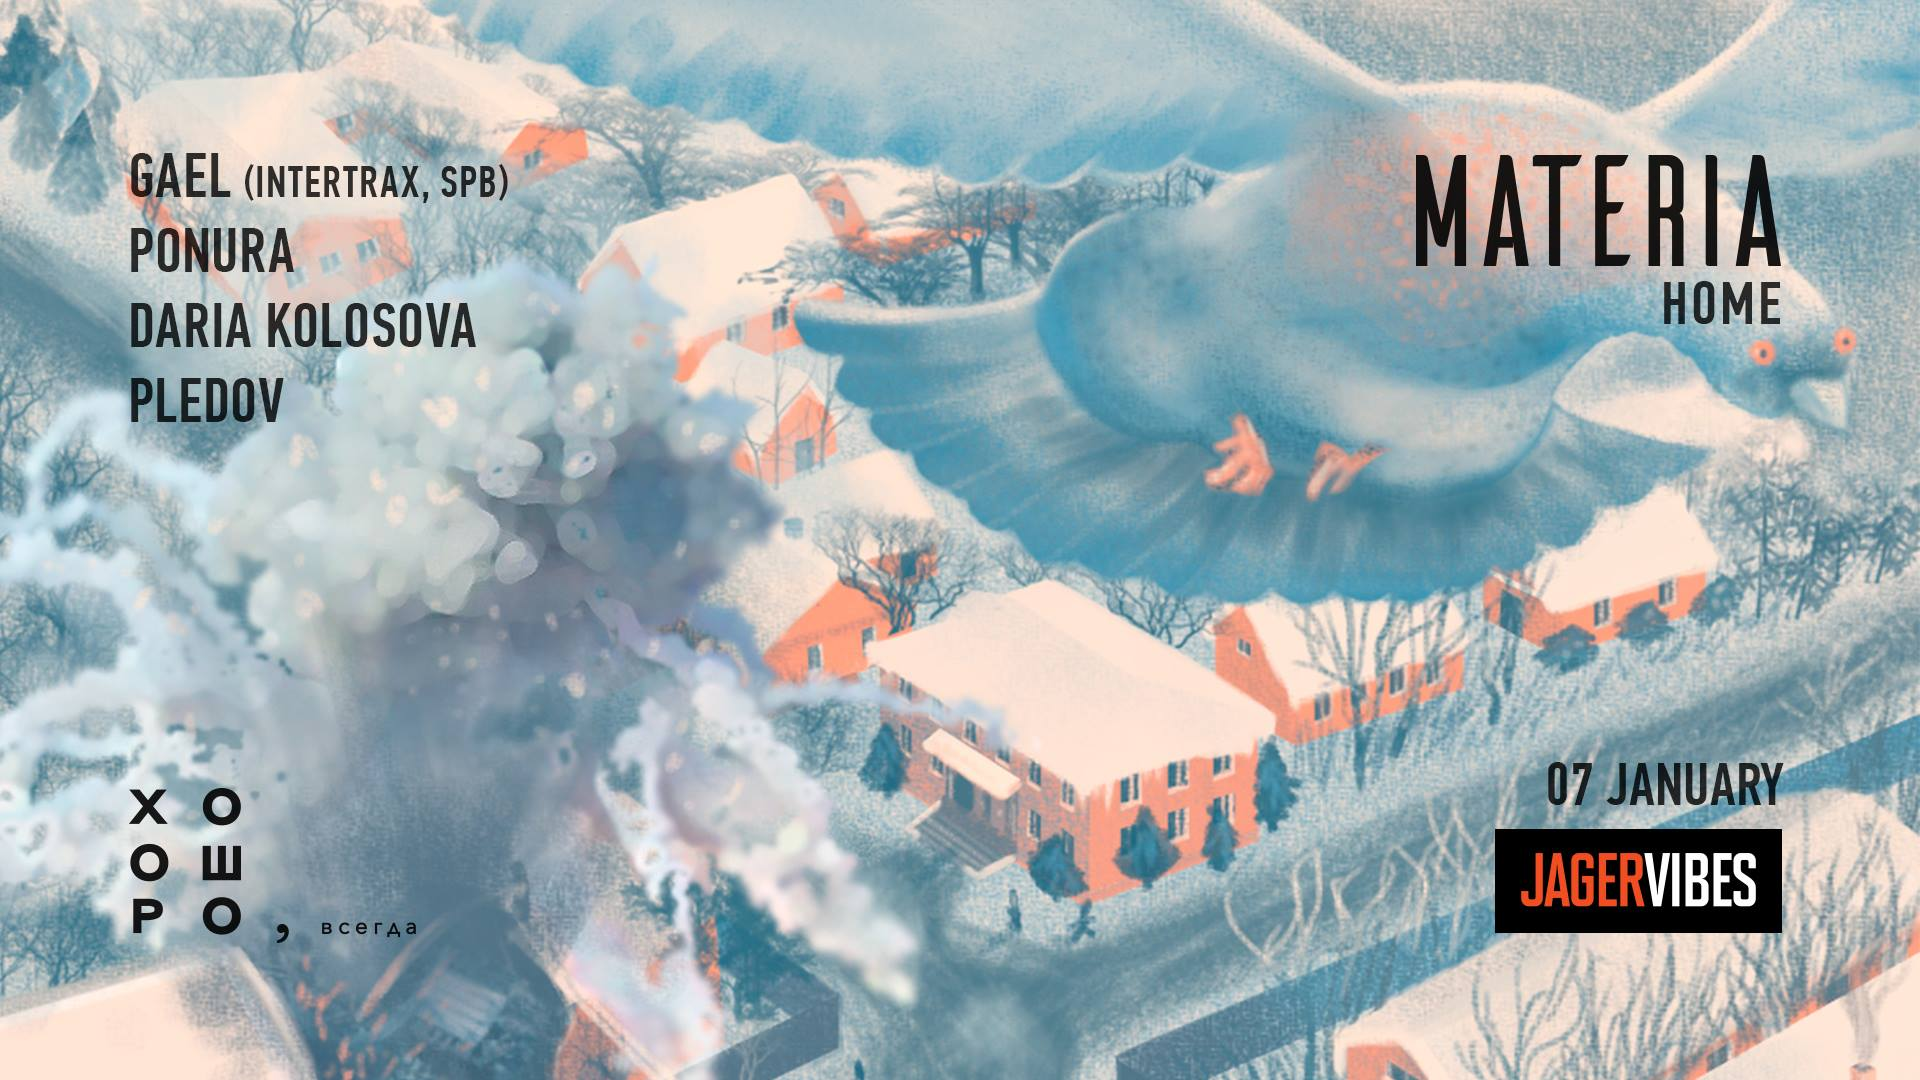 Christmas w/ Materia /home/. January 7